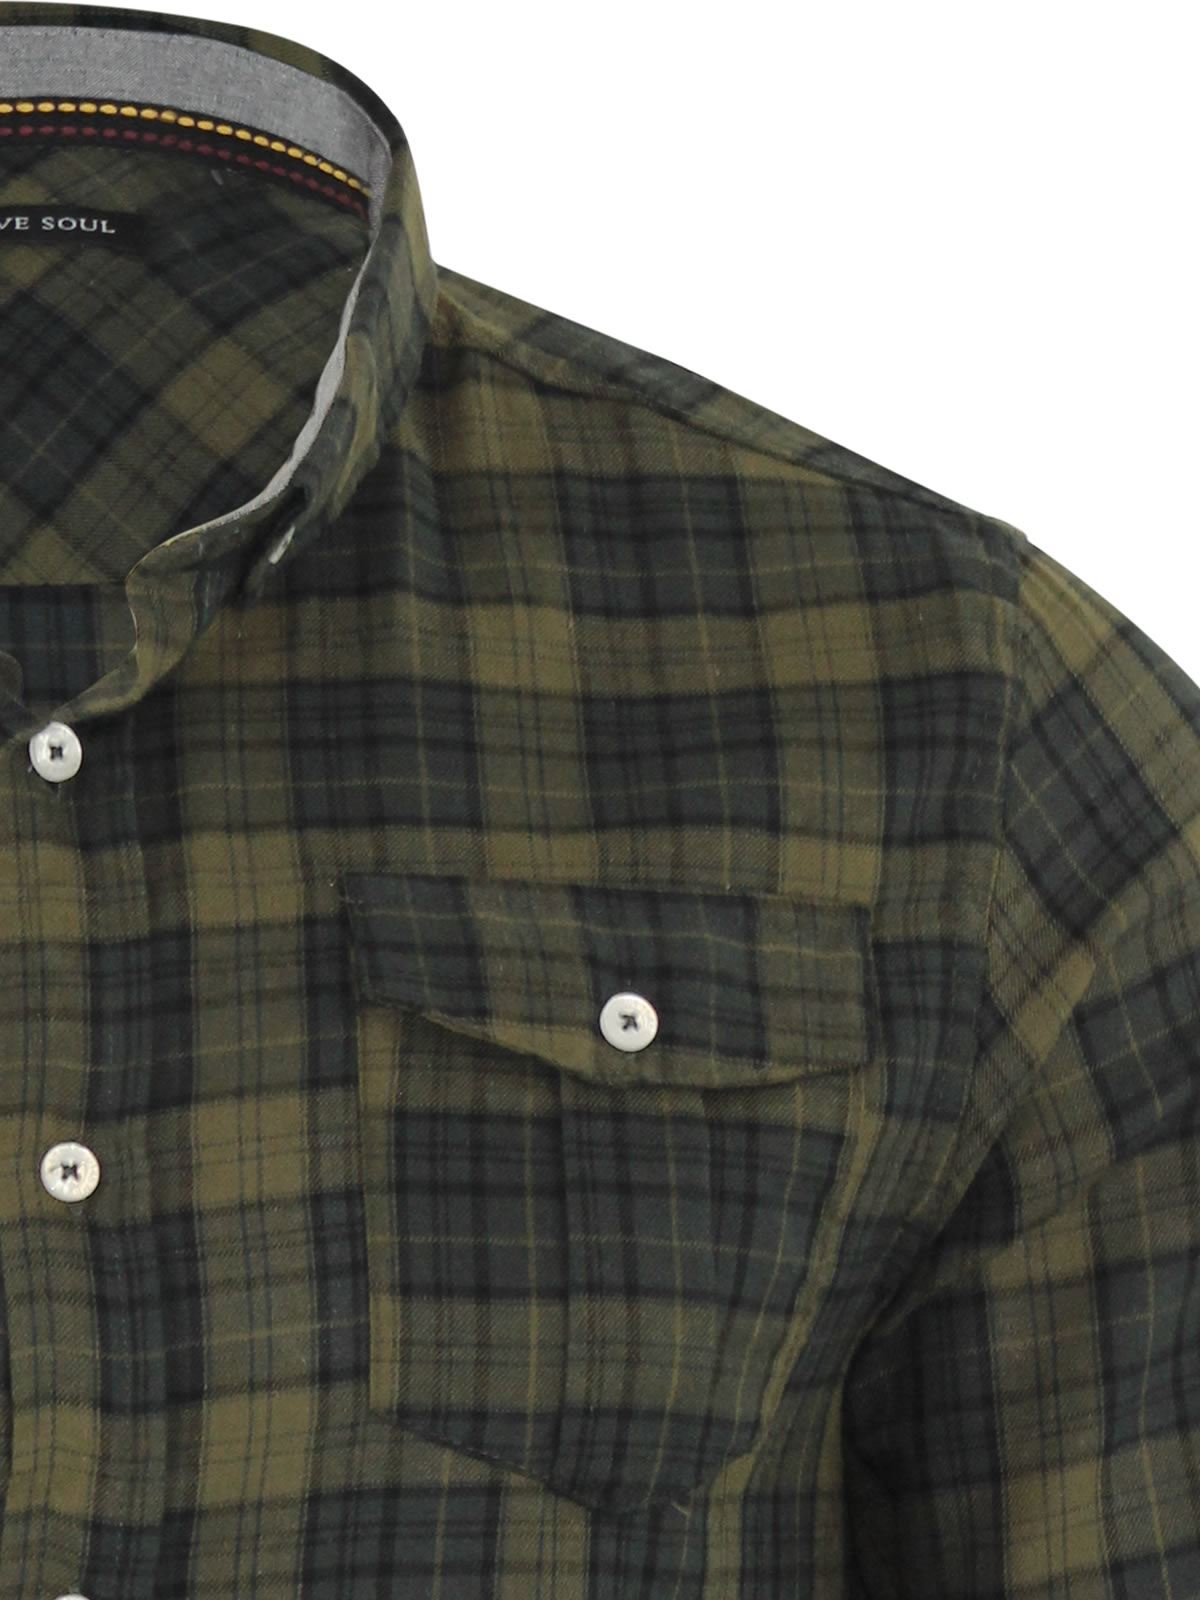 Mens-Check-Shirt-Brave-Soul-Flannel-Brushed-Cotton-Long-Sleeve-Casual-Top thumbnail 67